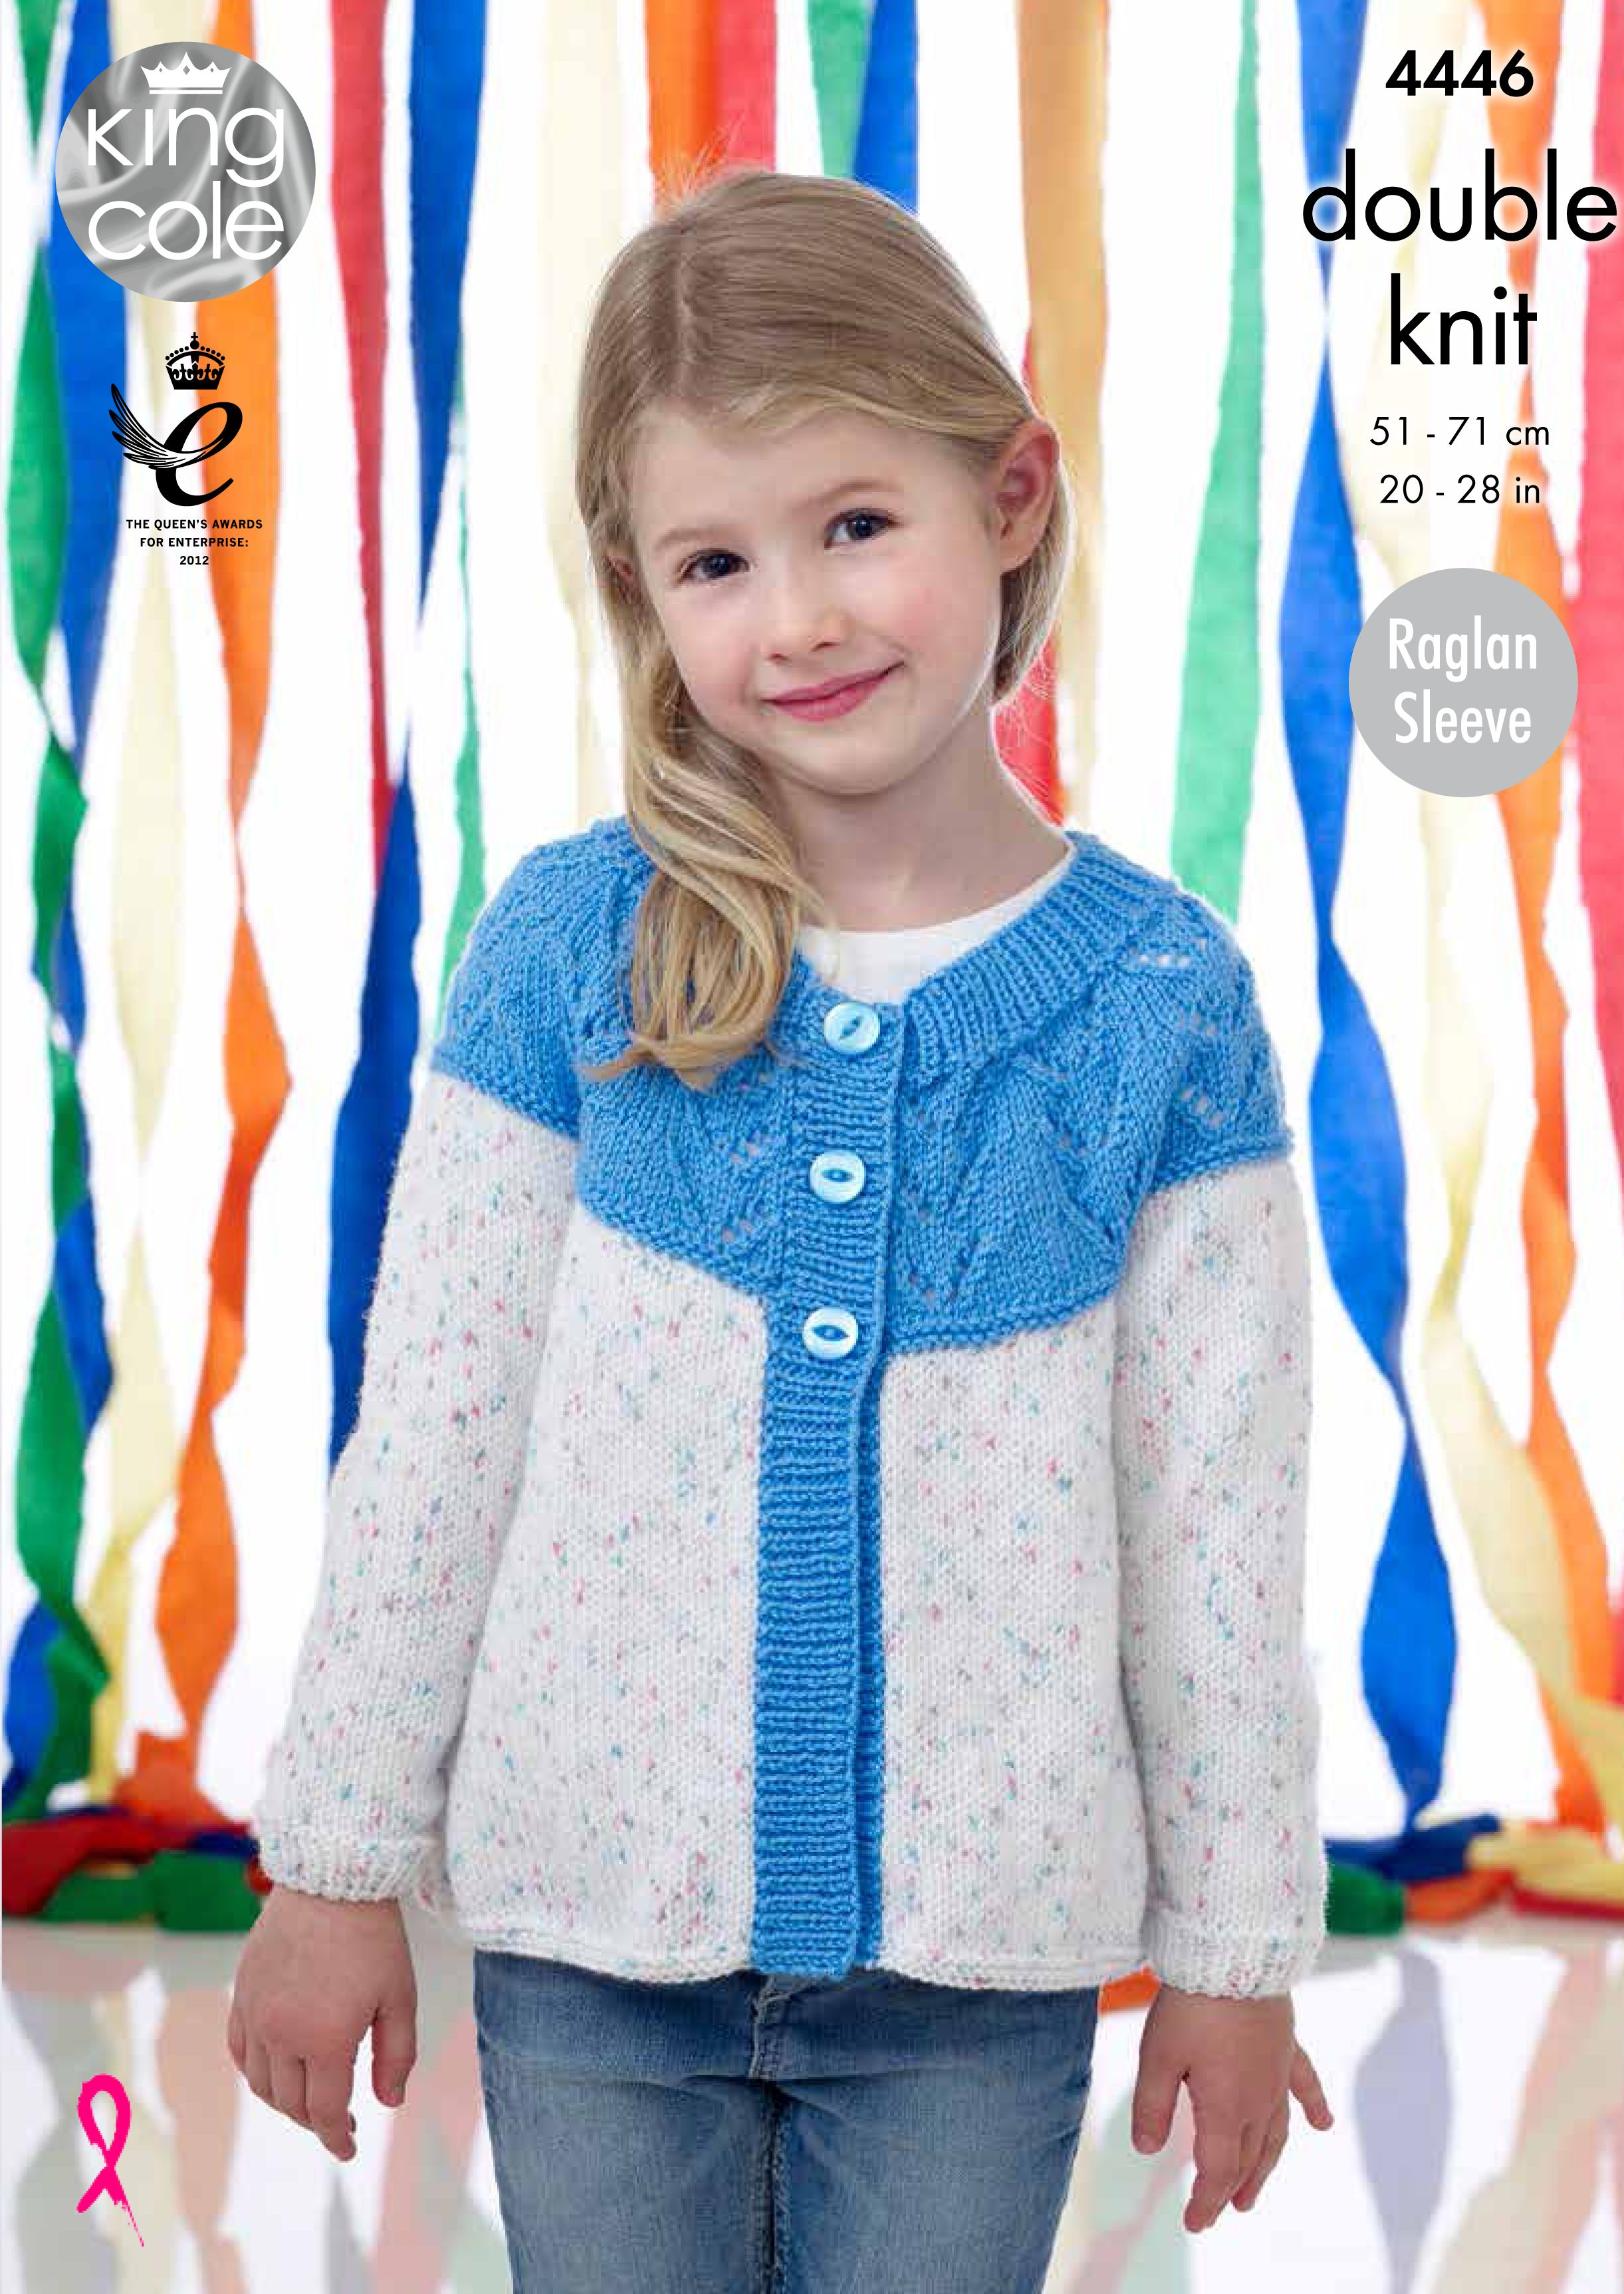 d28def1d4 Childrens Cardigan with Yoke - King Cole